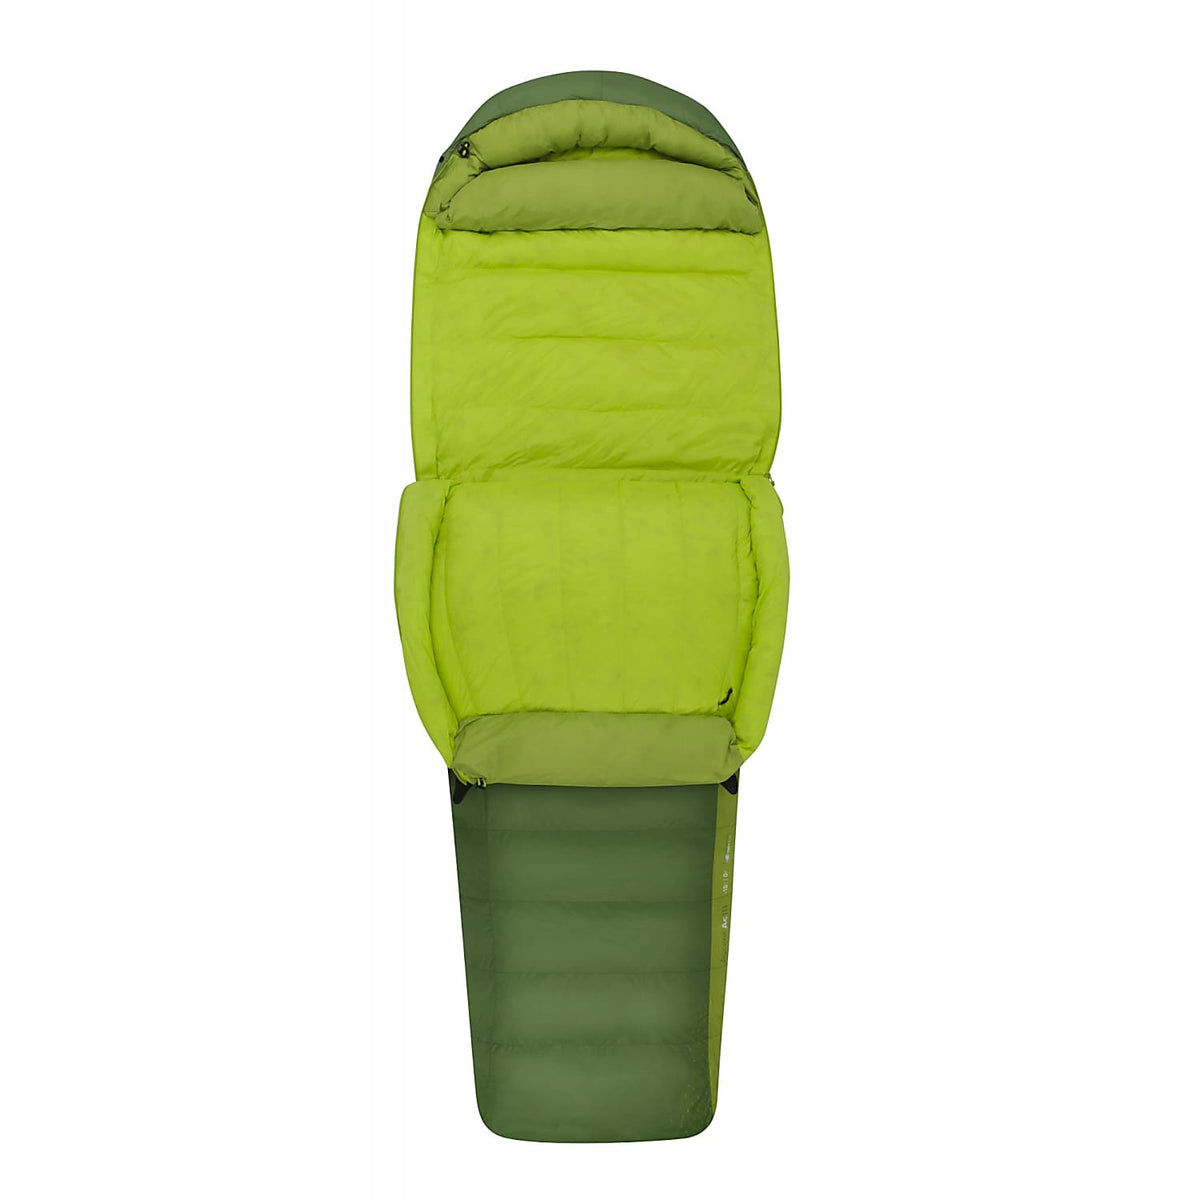 Sea to Summit Ascent III sleeping bag shown half open and folded down